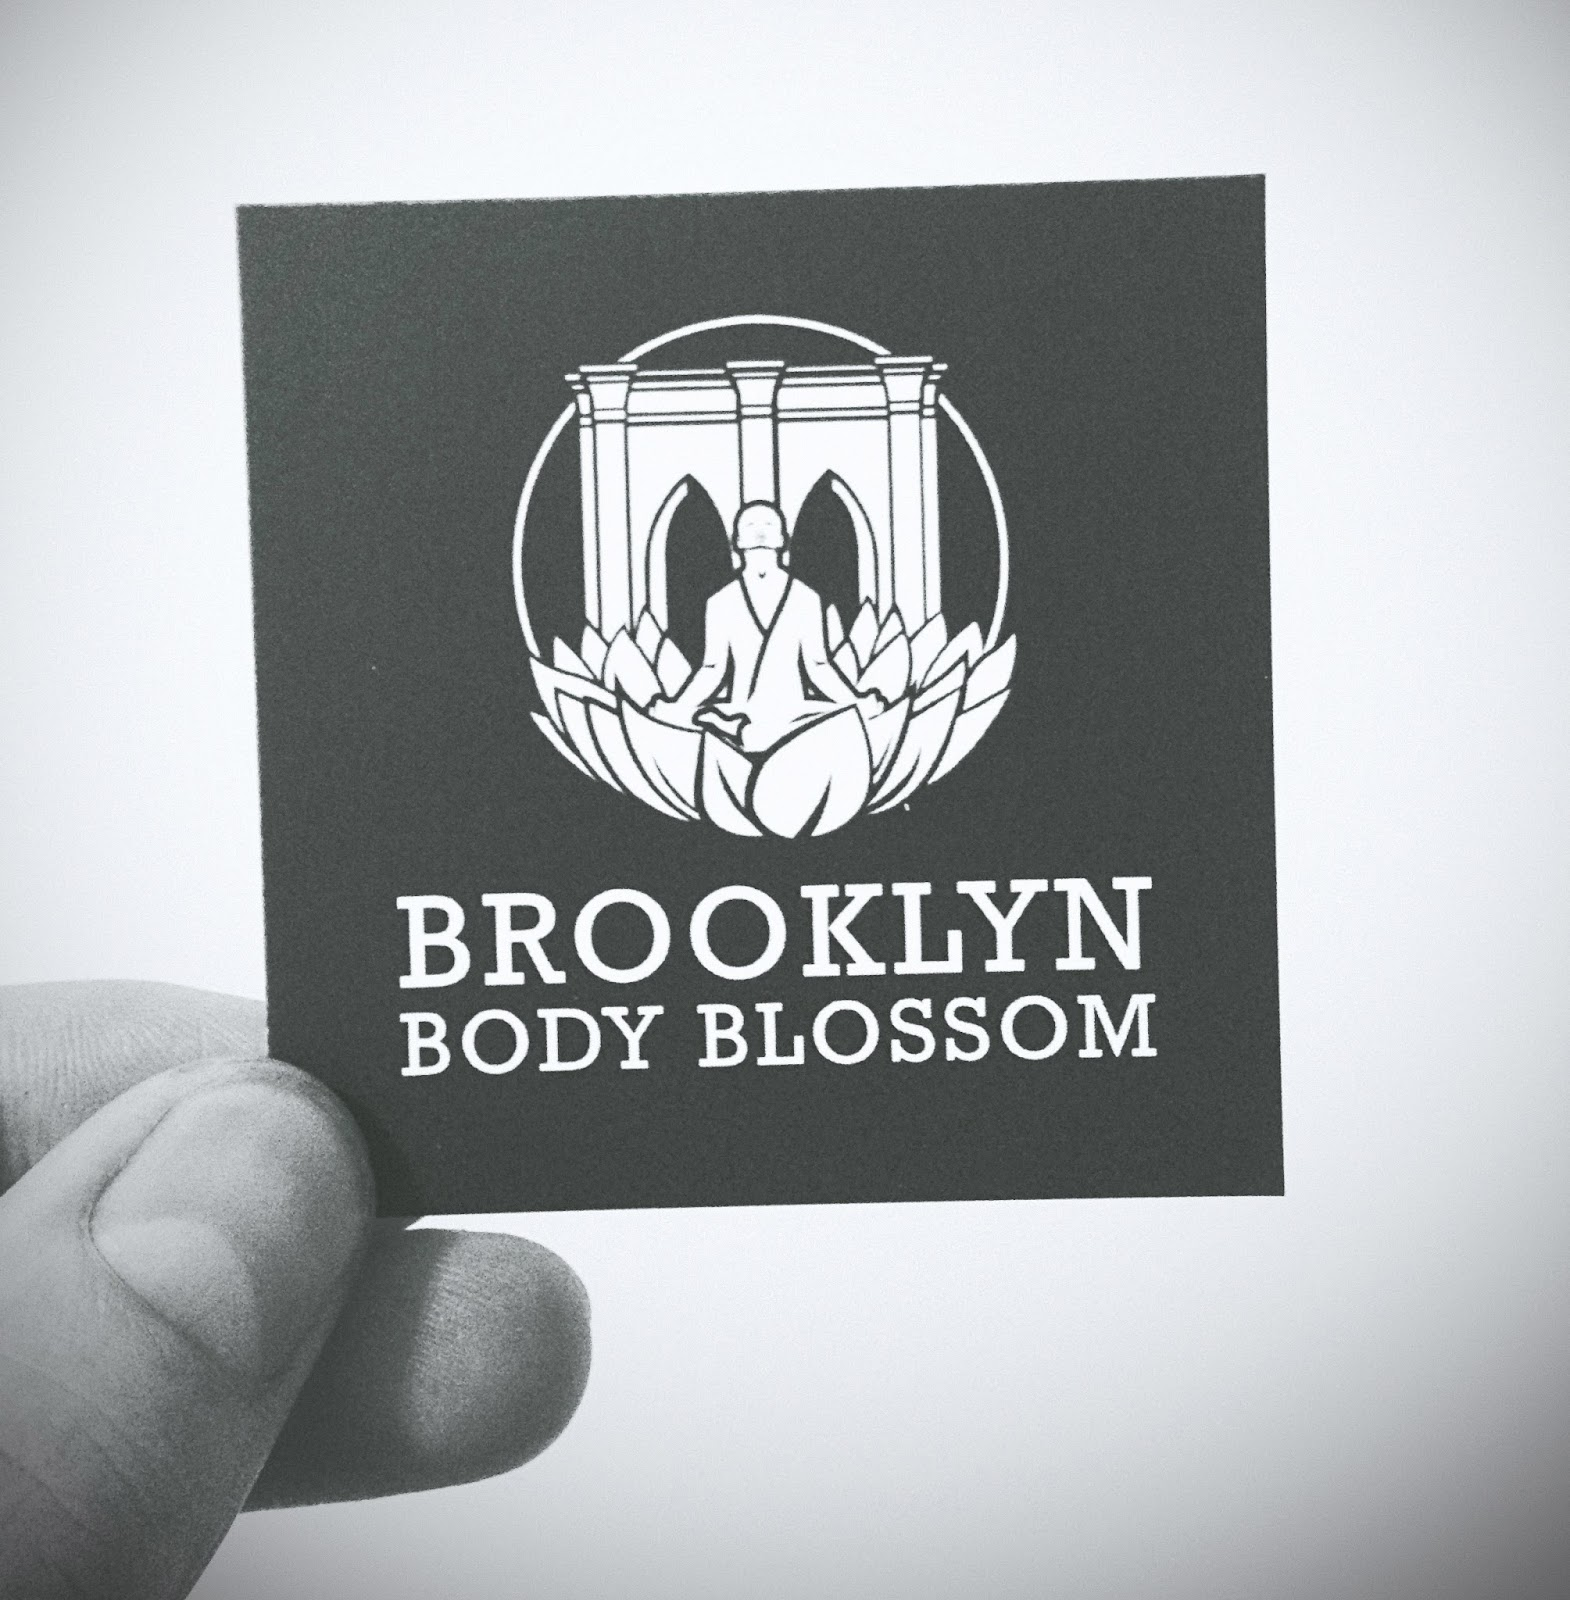 Brooklyn Body Blossom-Finished Logo